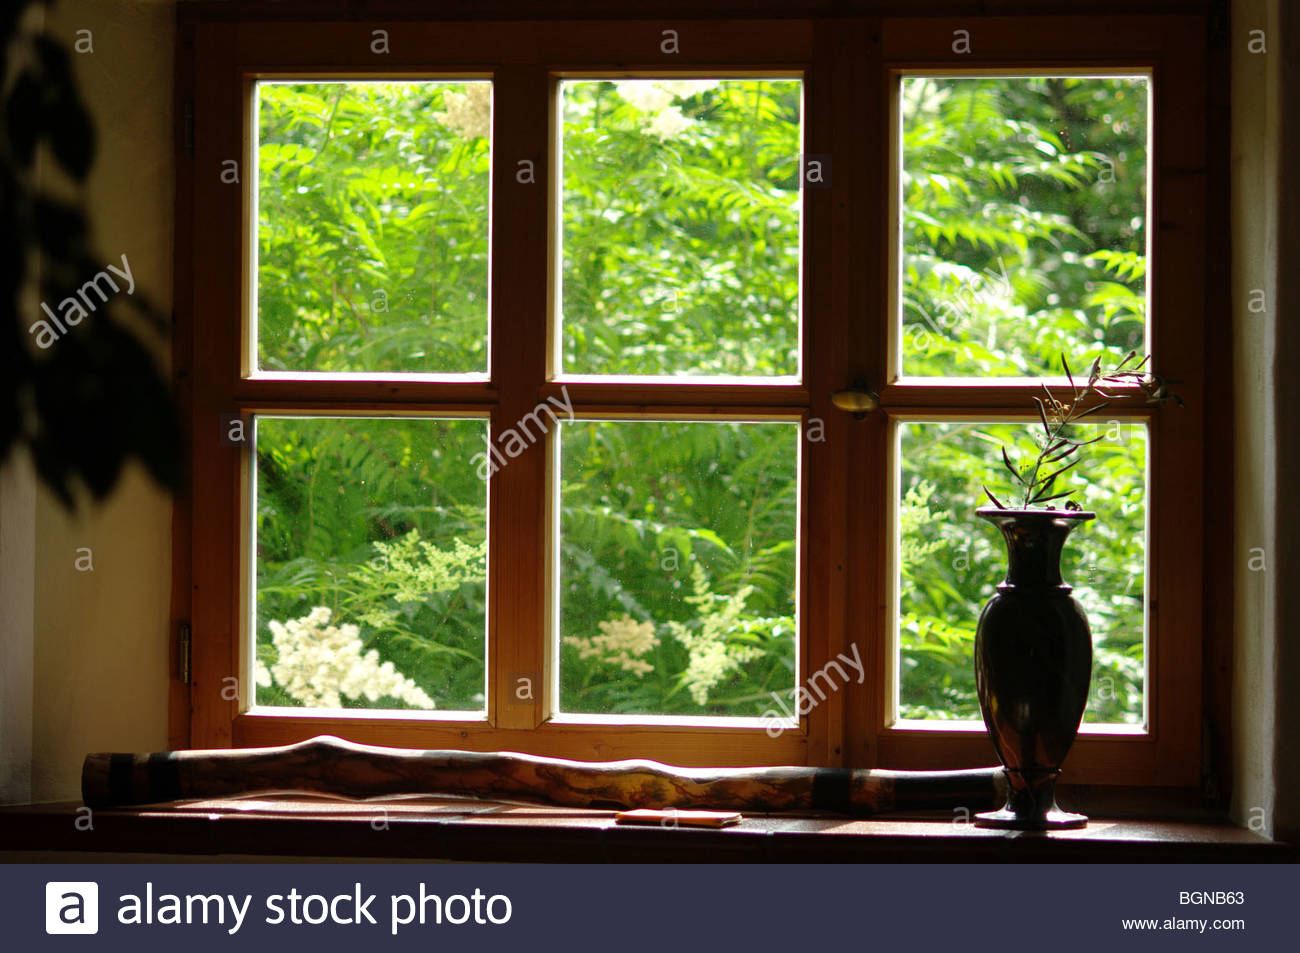 Window with a flower pot close up window pane - Stock Image